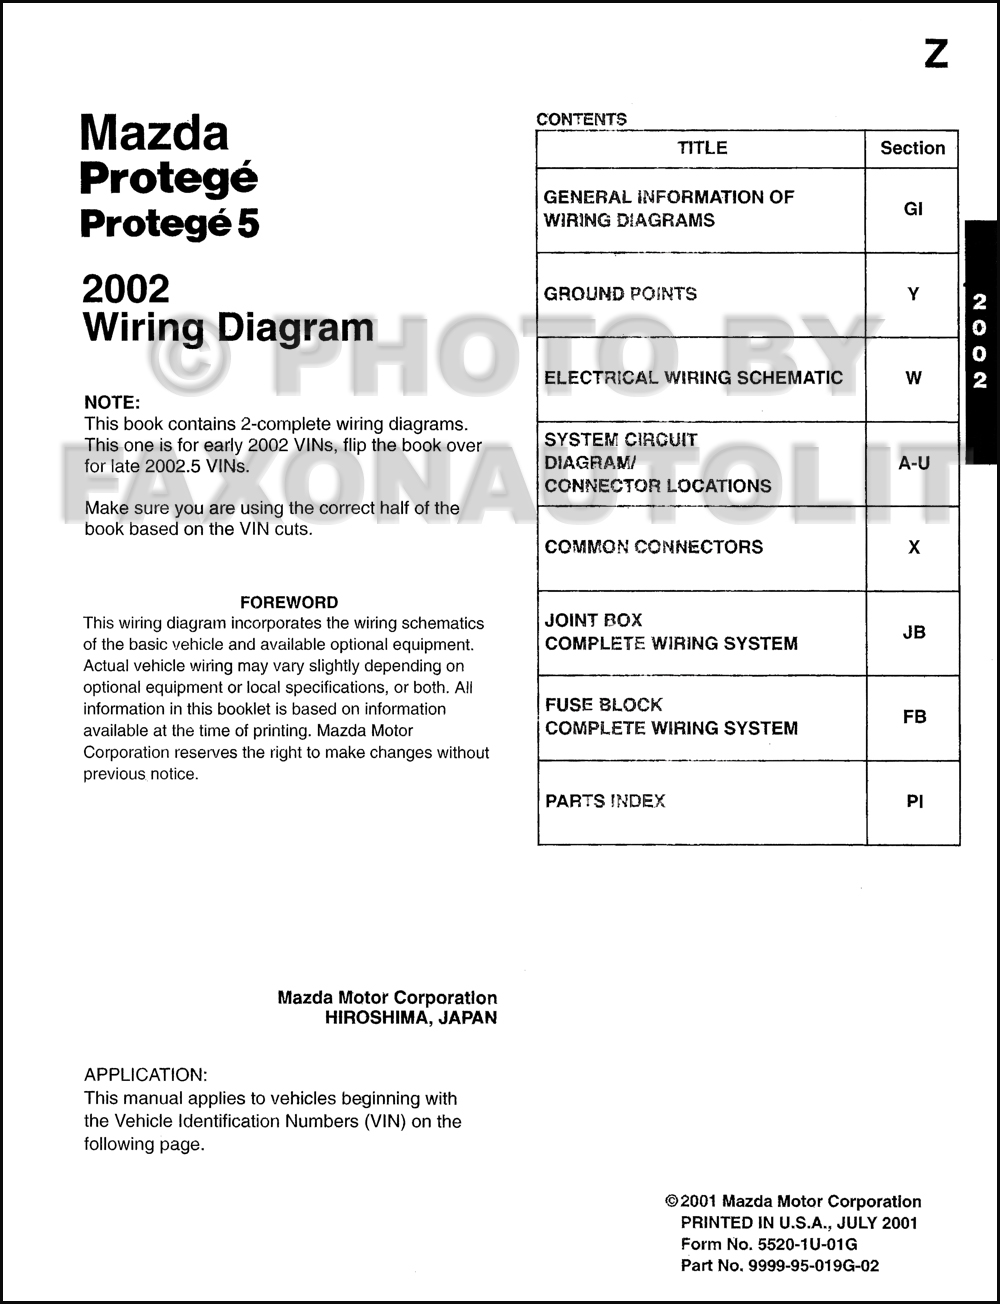 2002-2002.5 Mazda Protege Wiring Diagram Manual Original · Table of Contents